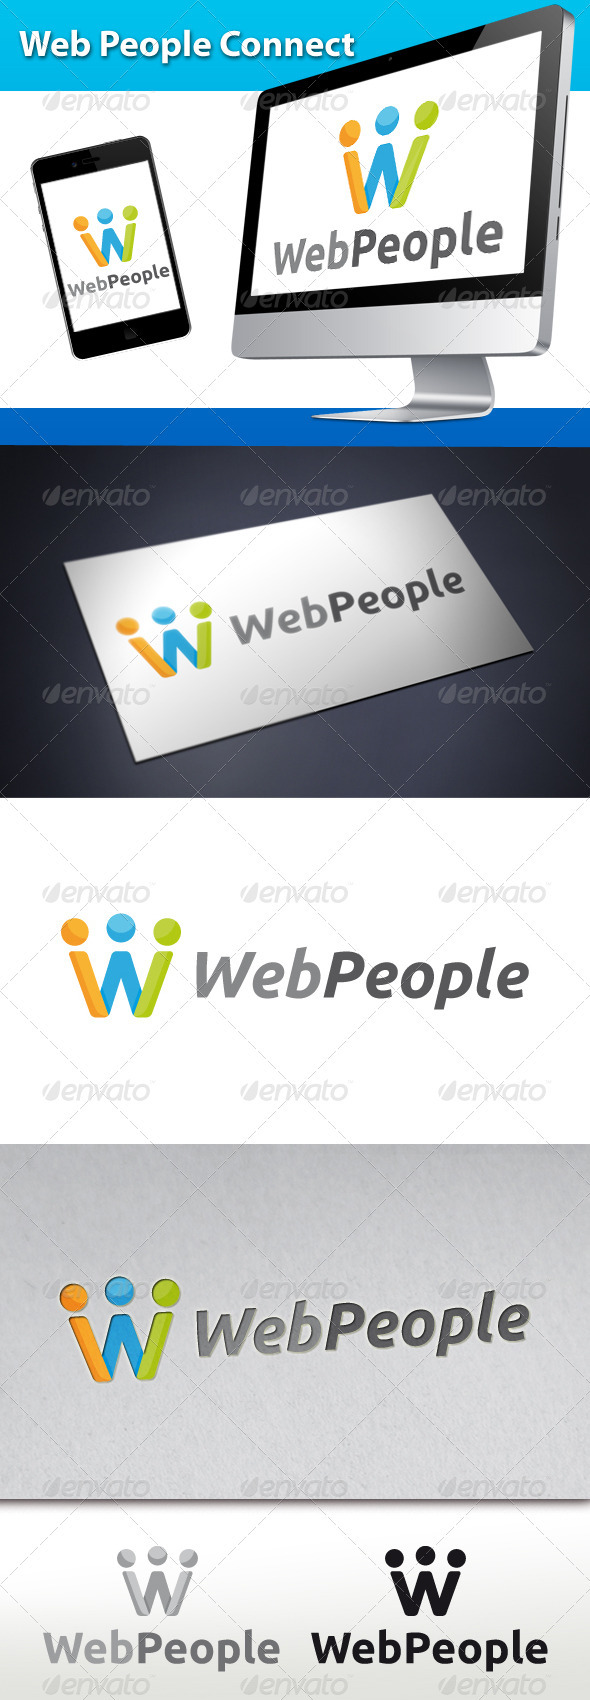 Web People Connect Logo Preview - Letters Logo Templates